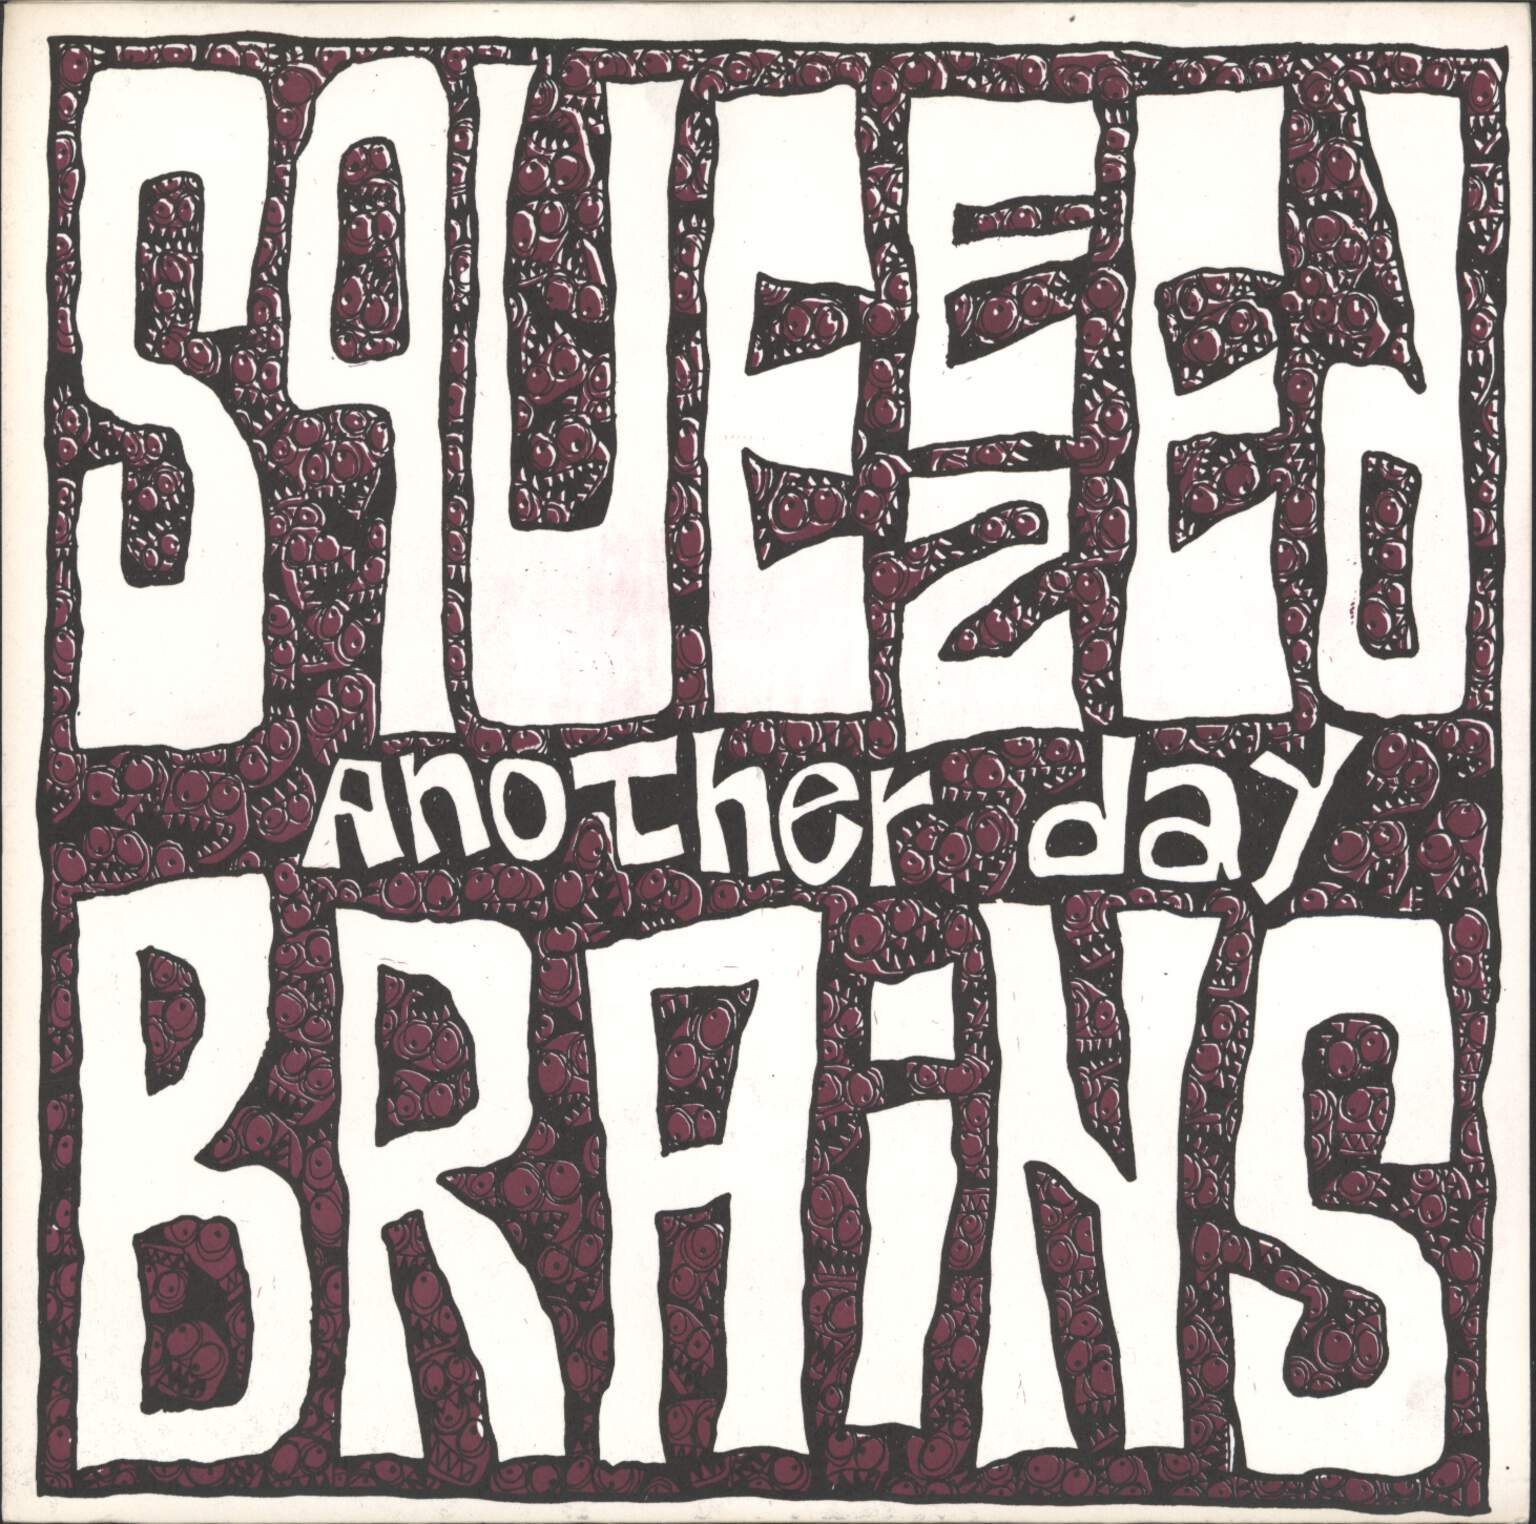 "Cerebros Exprimidos as Squeezed Brains: Another Day, 7"" Single (Vinyl)"